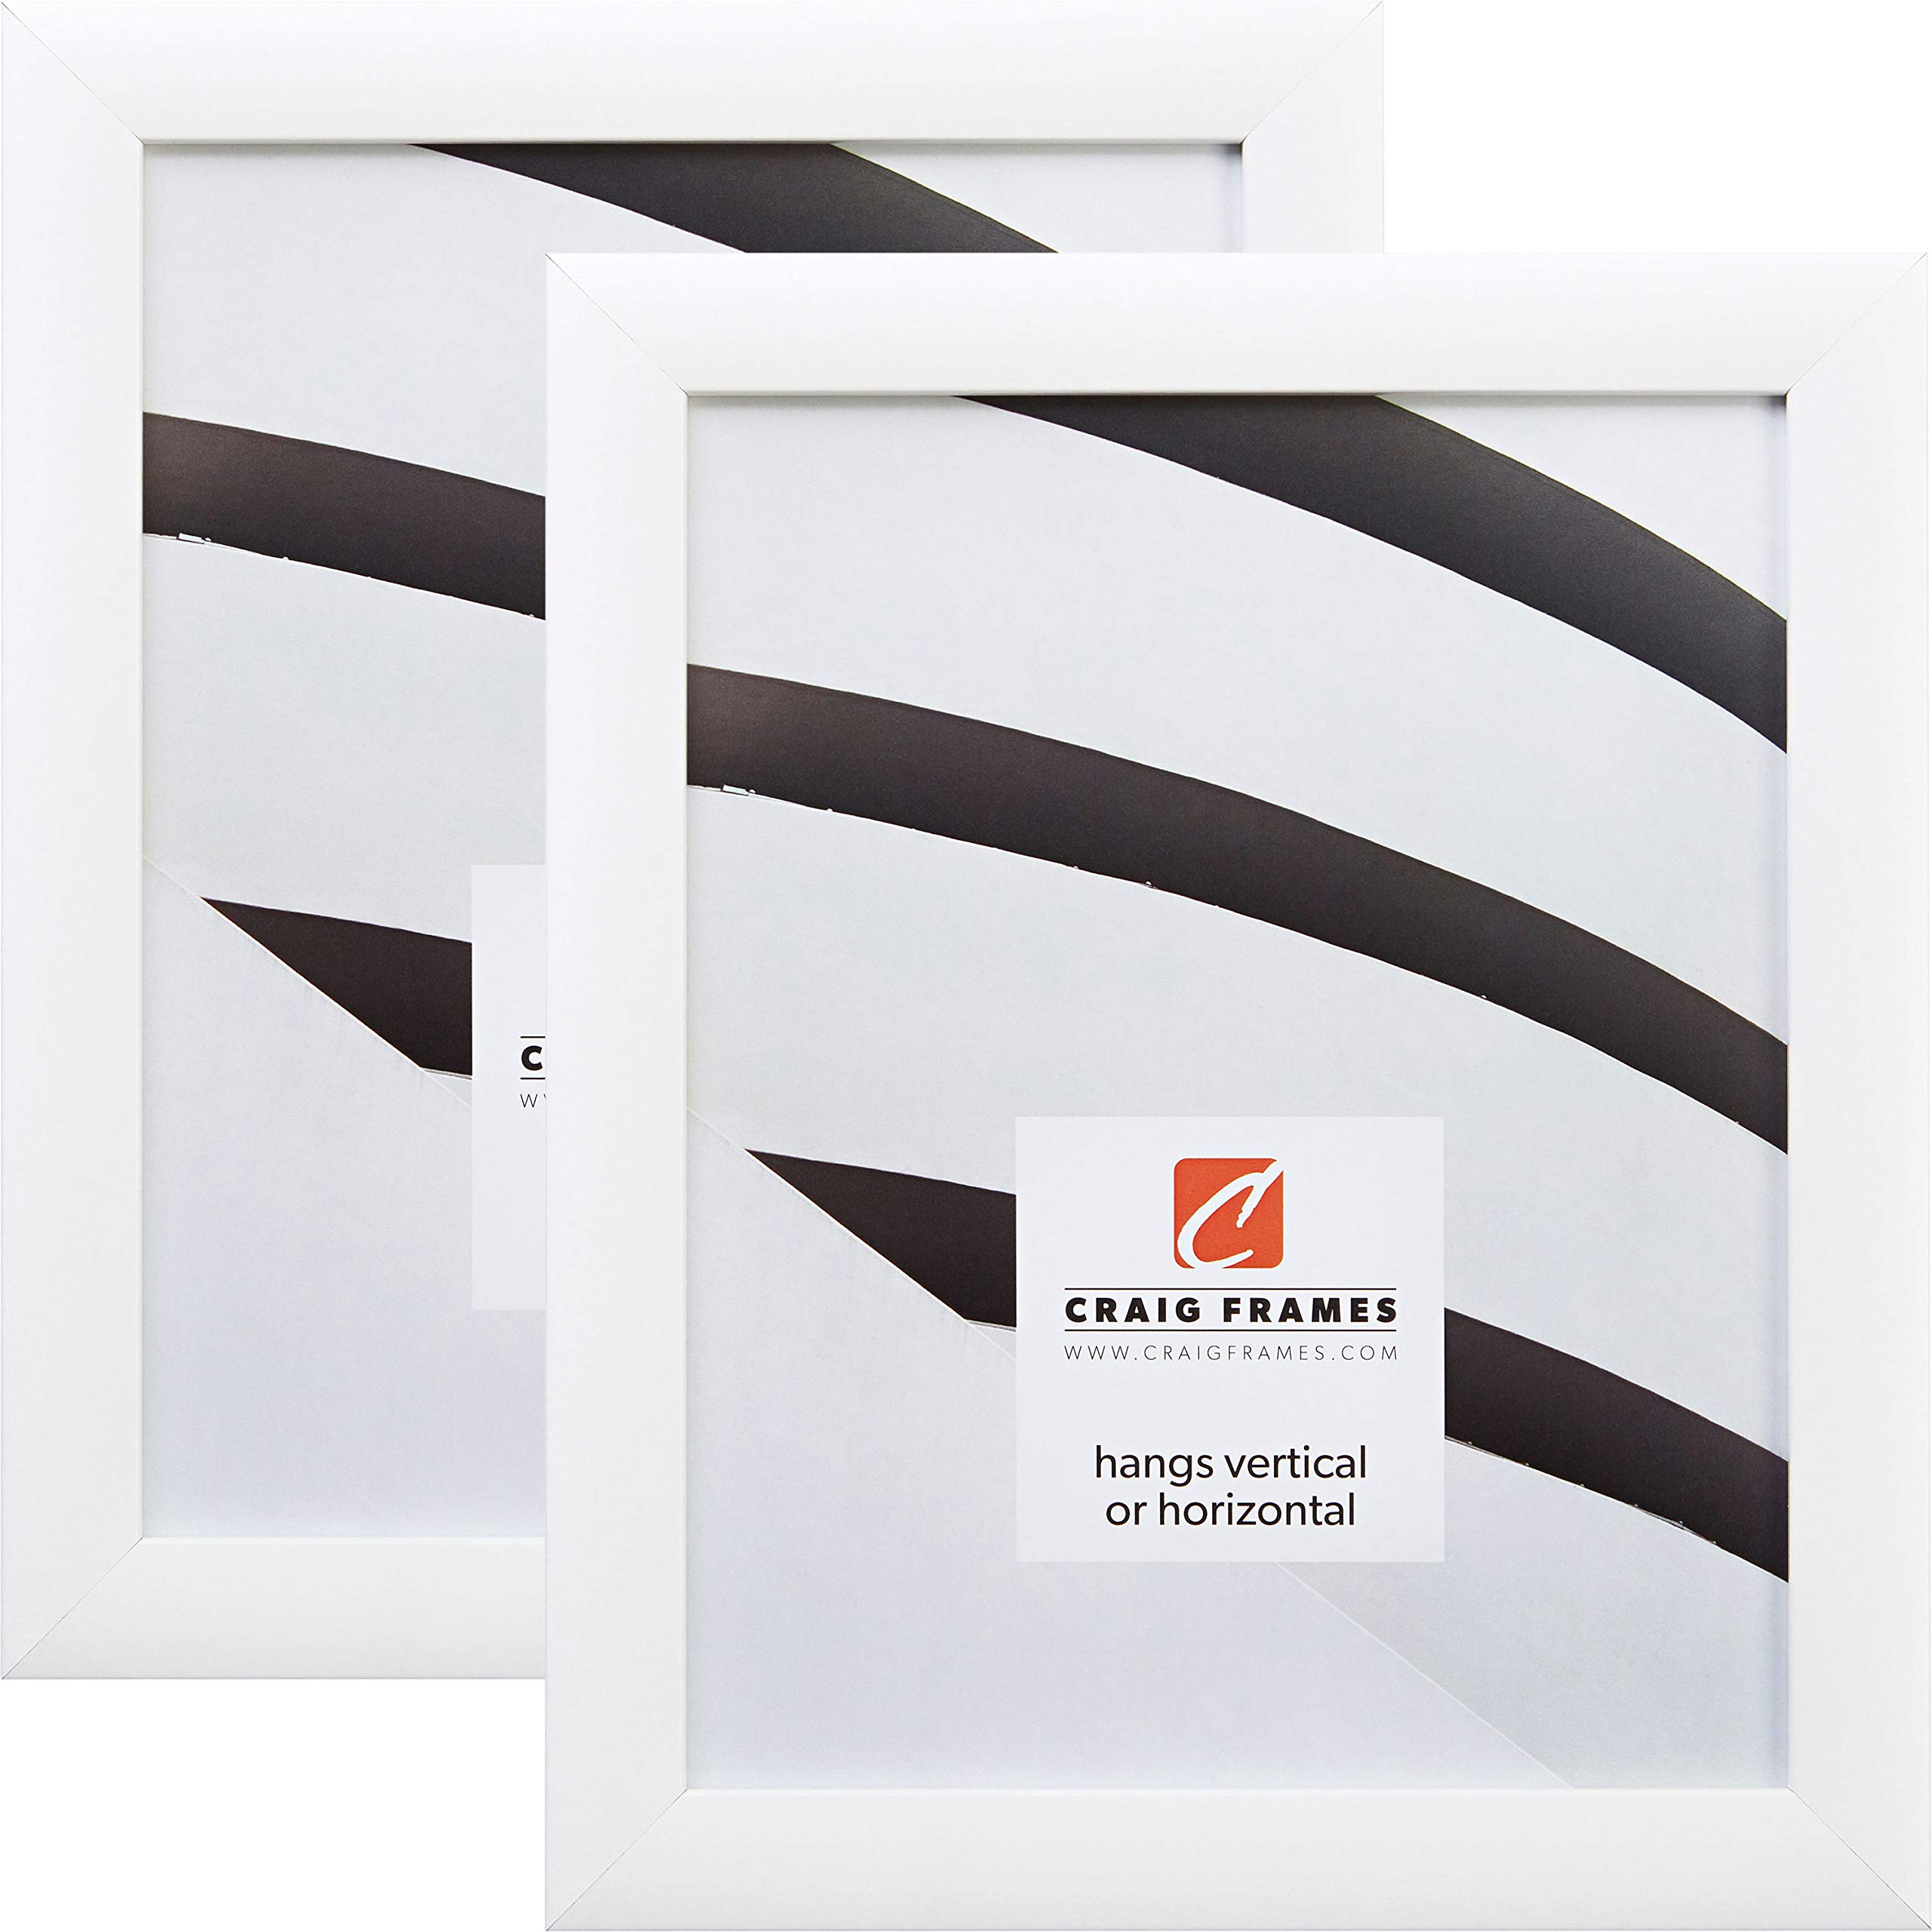 Craig Frames 23247812 20 x 30 Inch Picture Frame, White, Set of 2 by Craig Frames